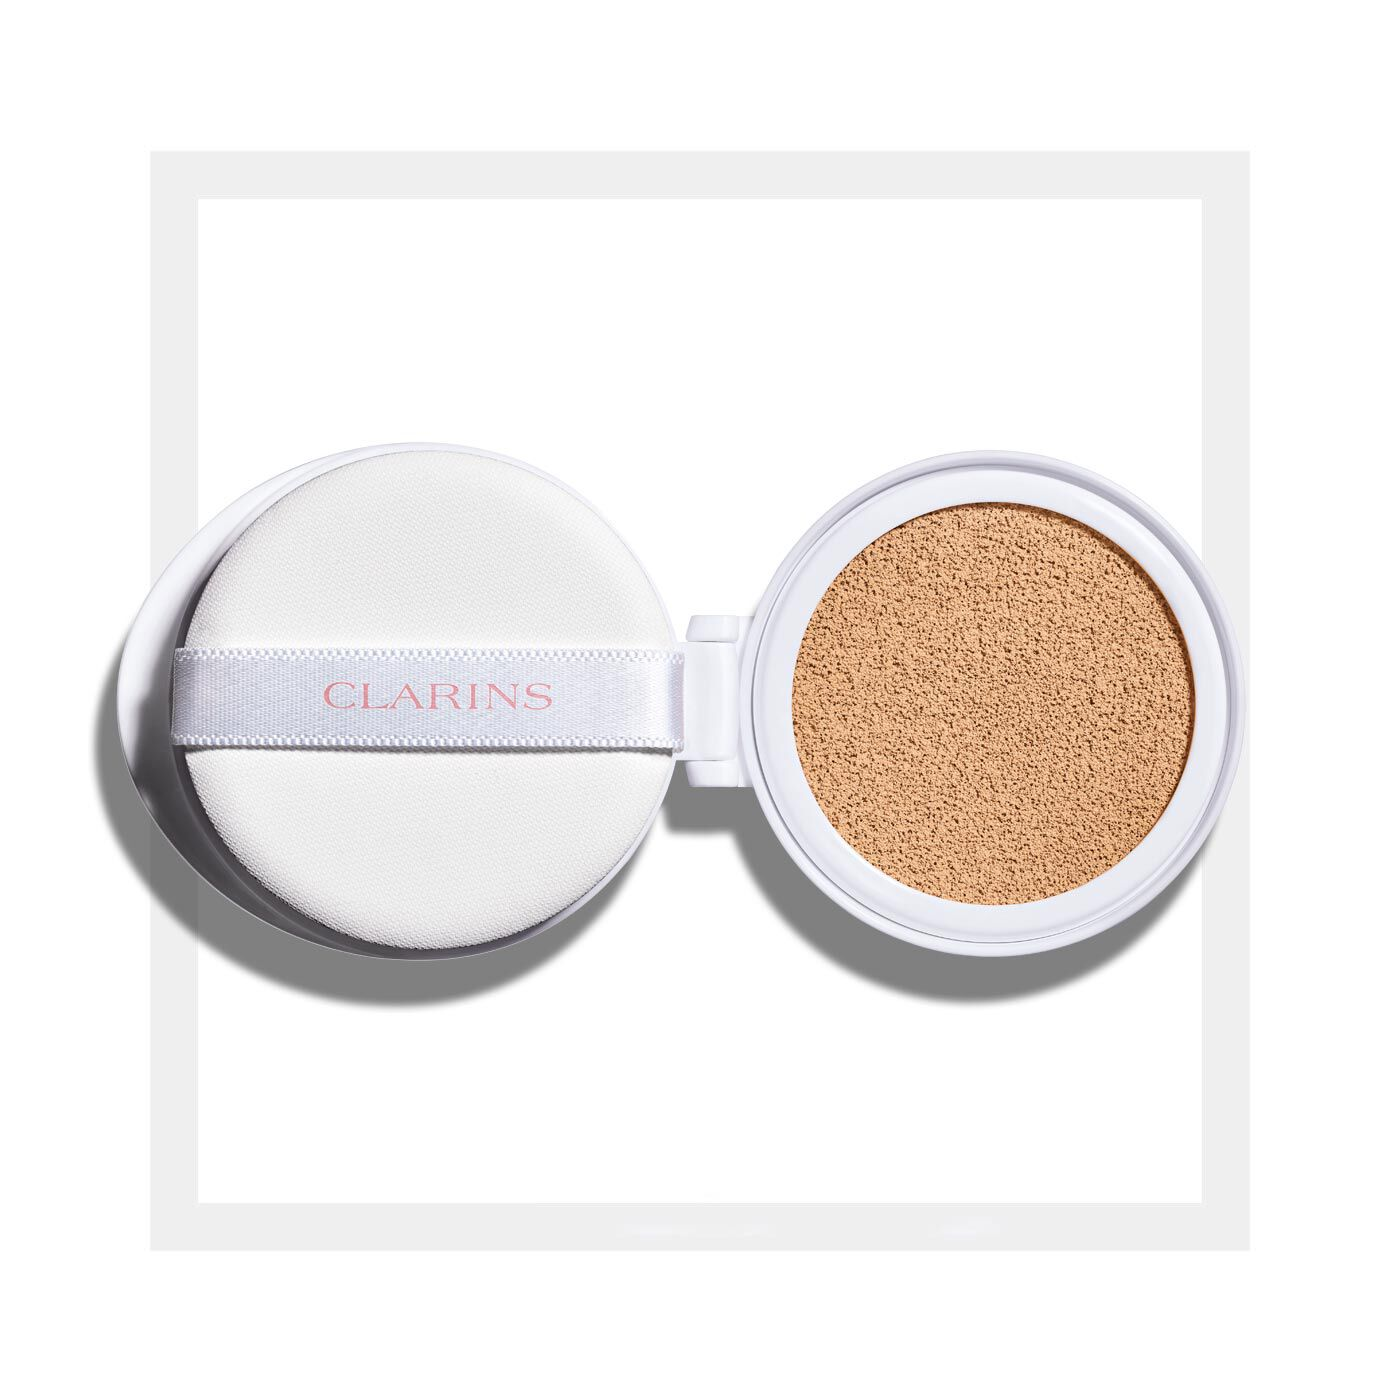 White Plus Pure Translucency Bright Plus Brightening cushion foundation SPF 50 / PA +++ Refill